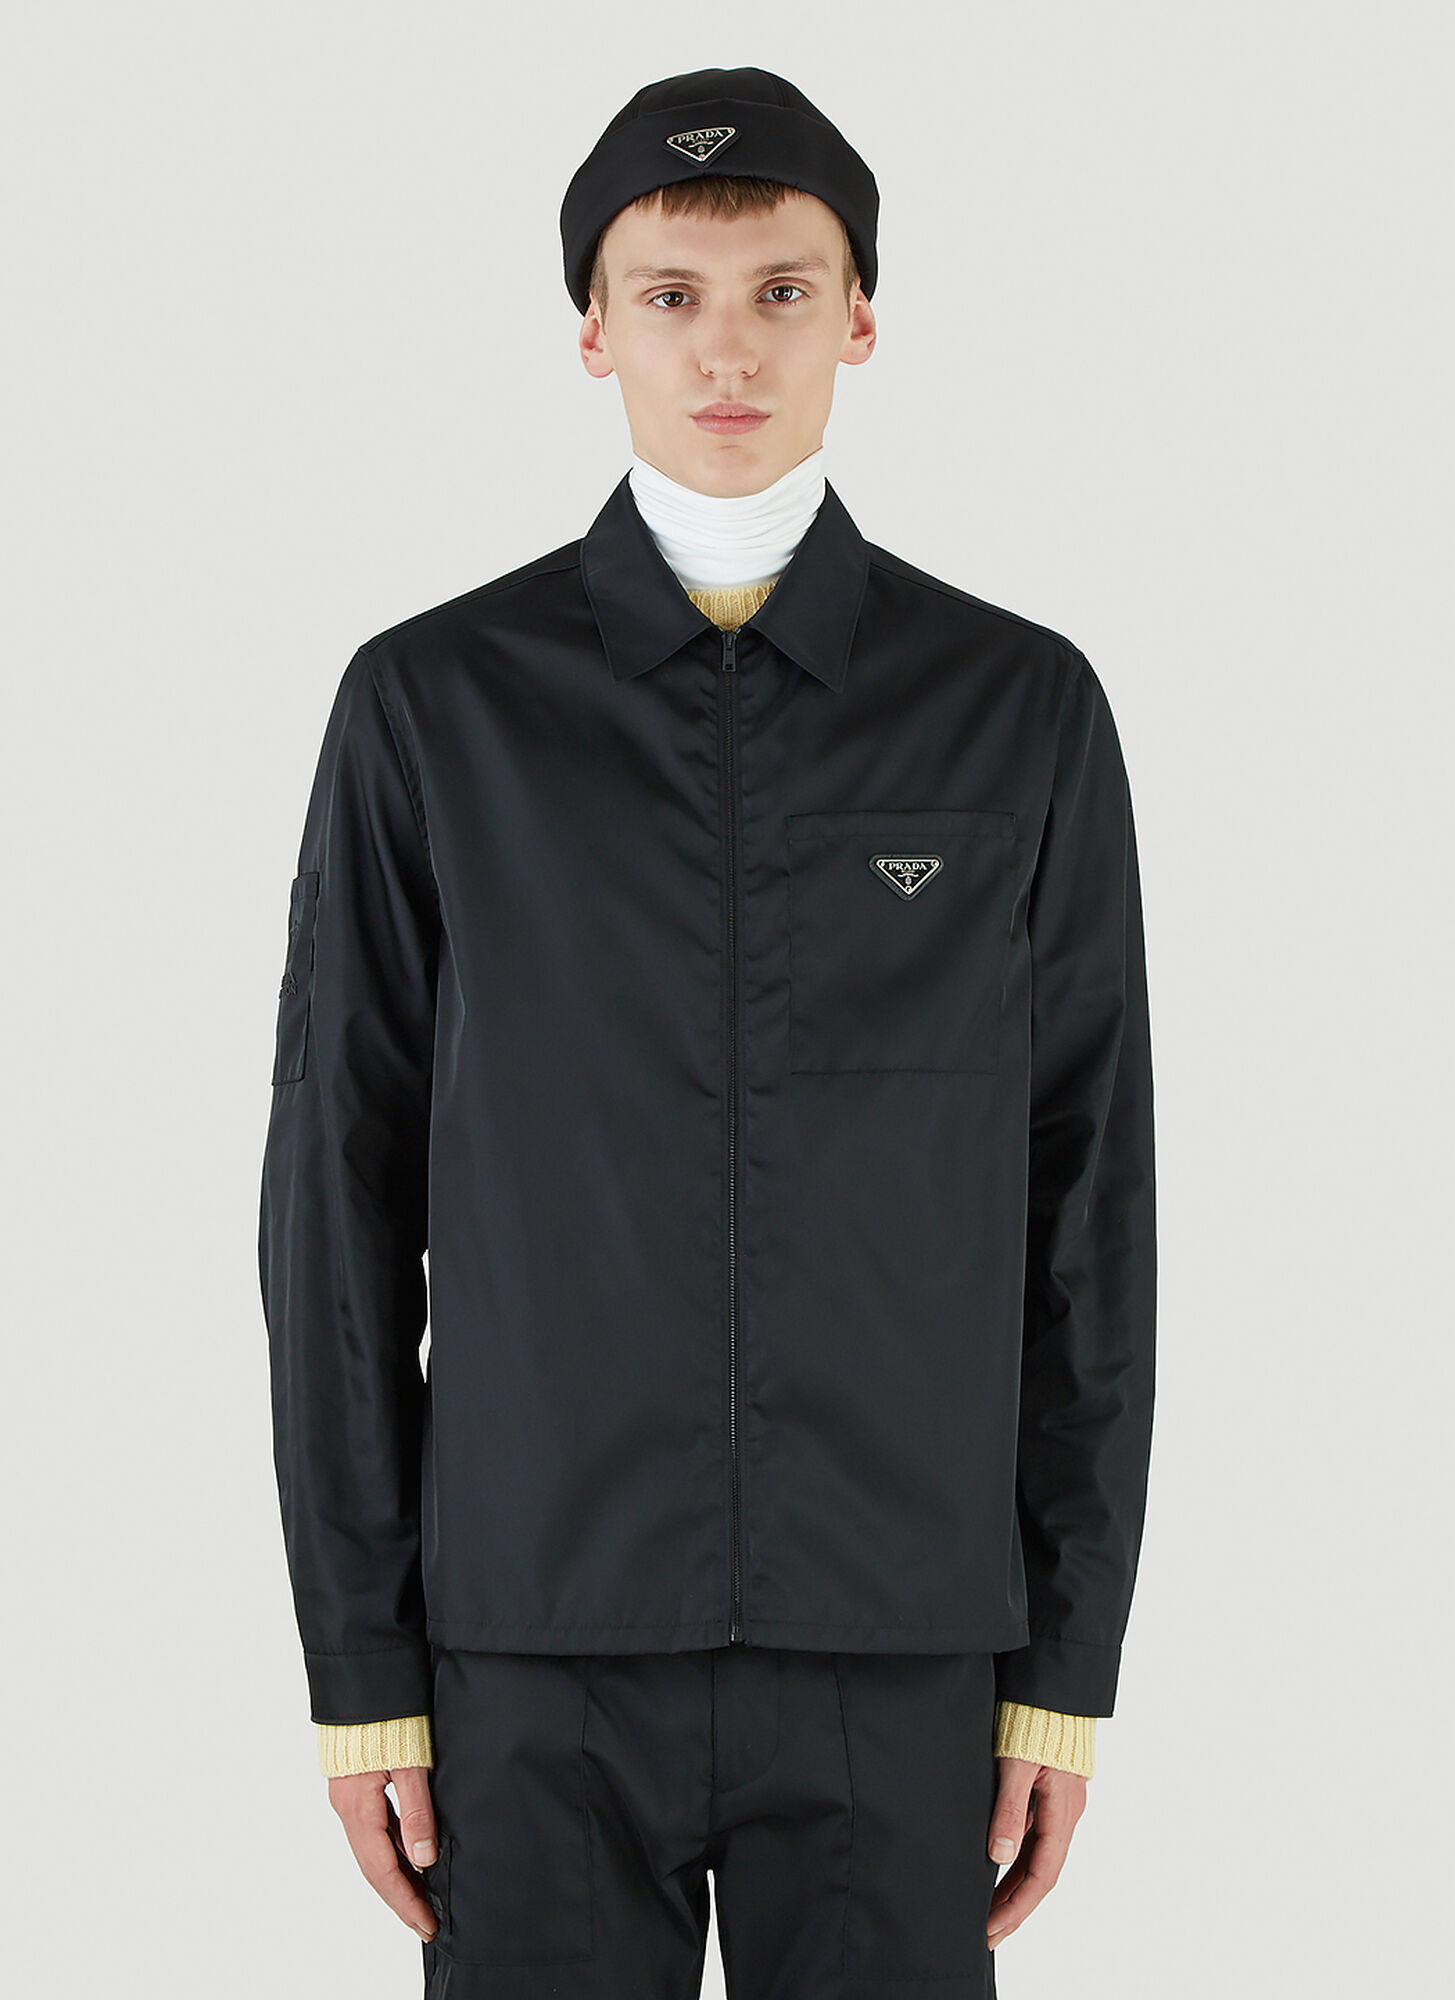 male Black 100% Recycled Nylon. Dry clean.